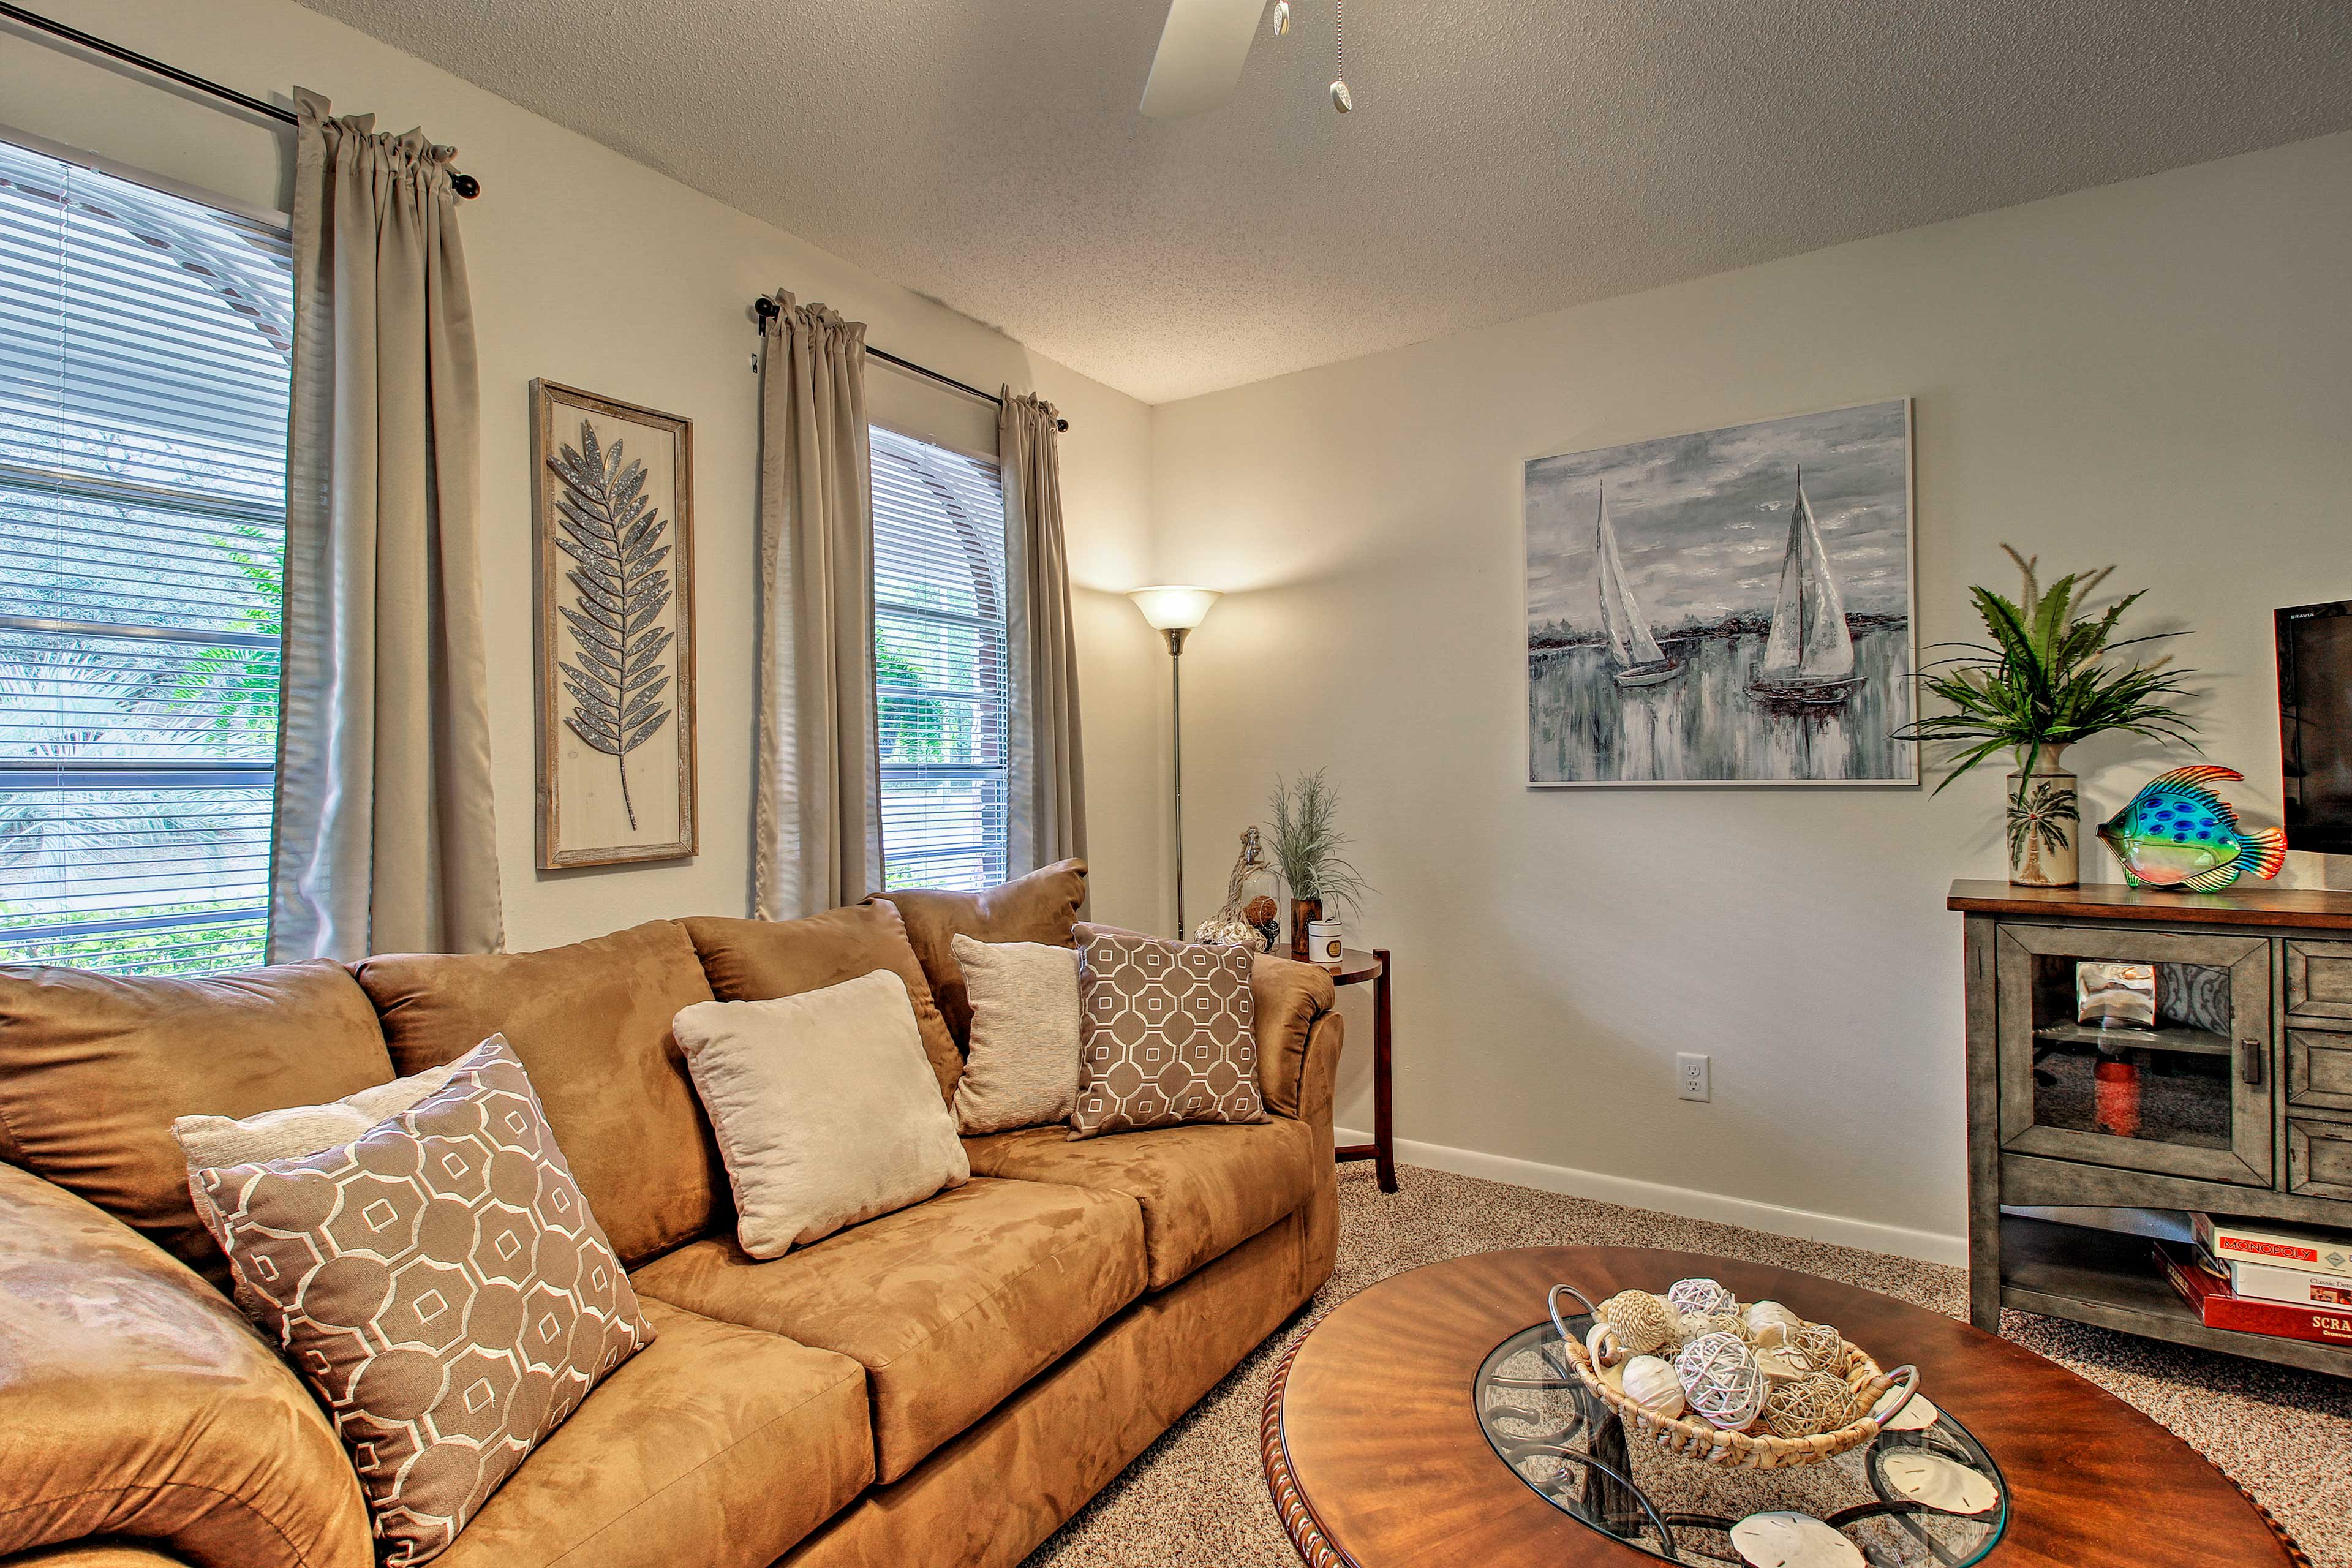 Lounge on the couch and enjoy the natural light beaming through the windows.